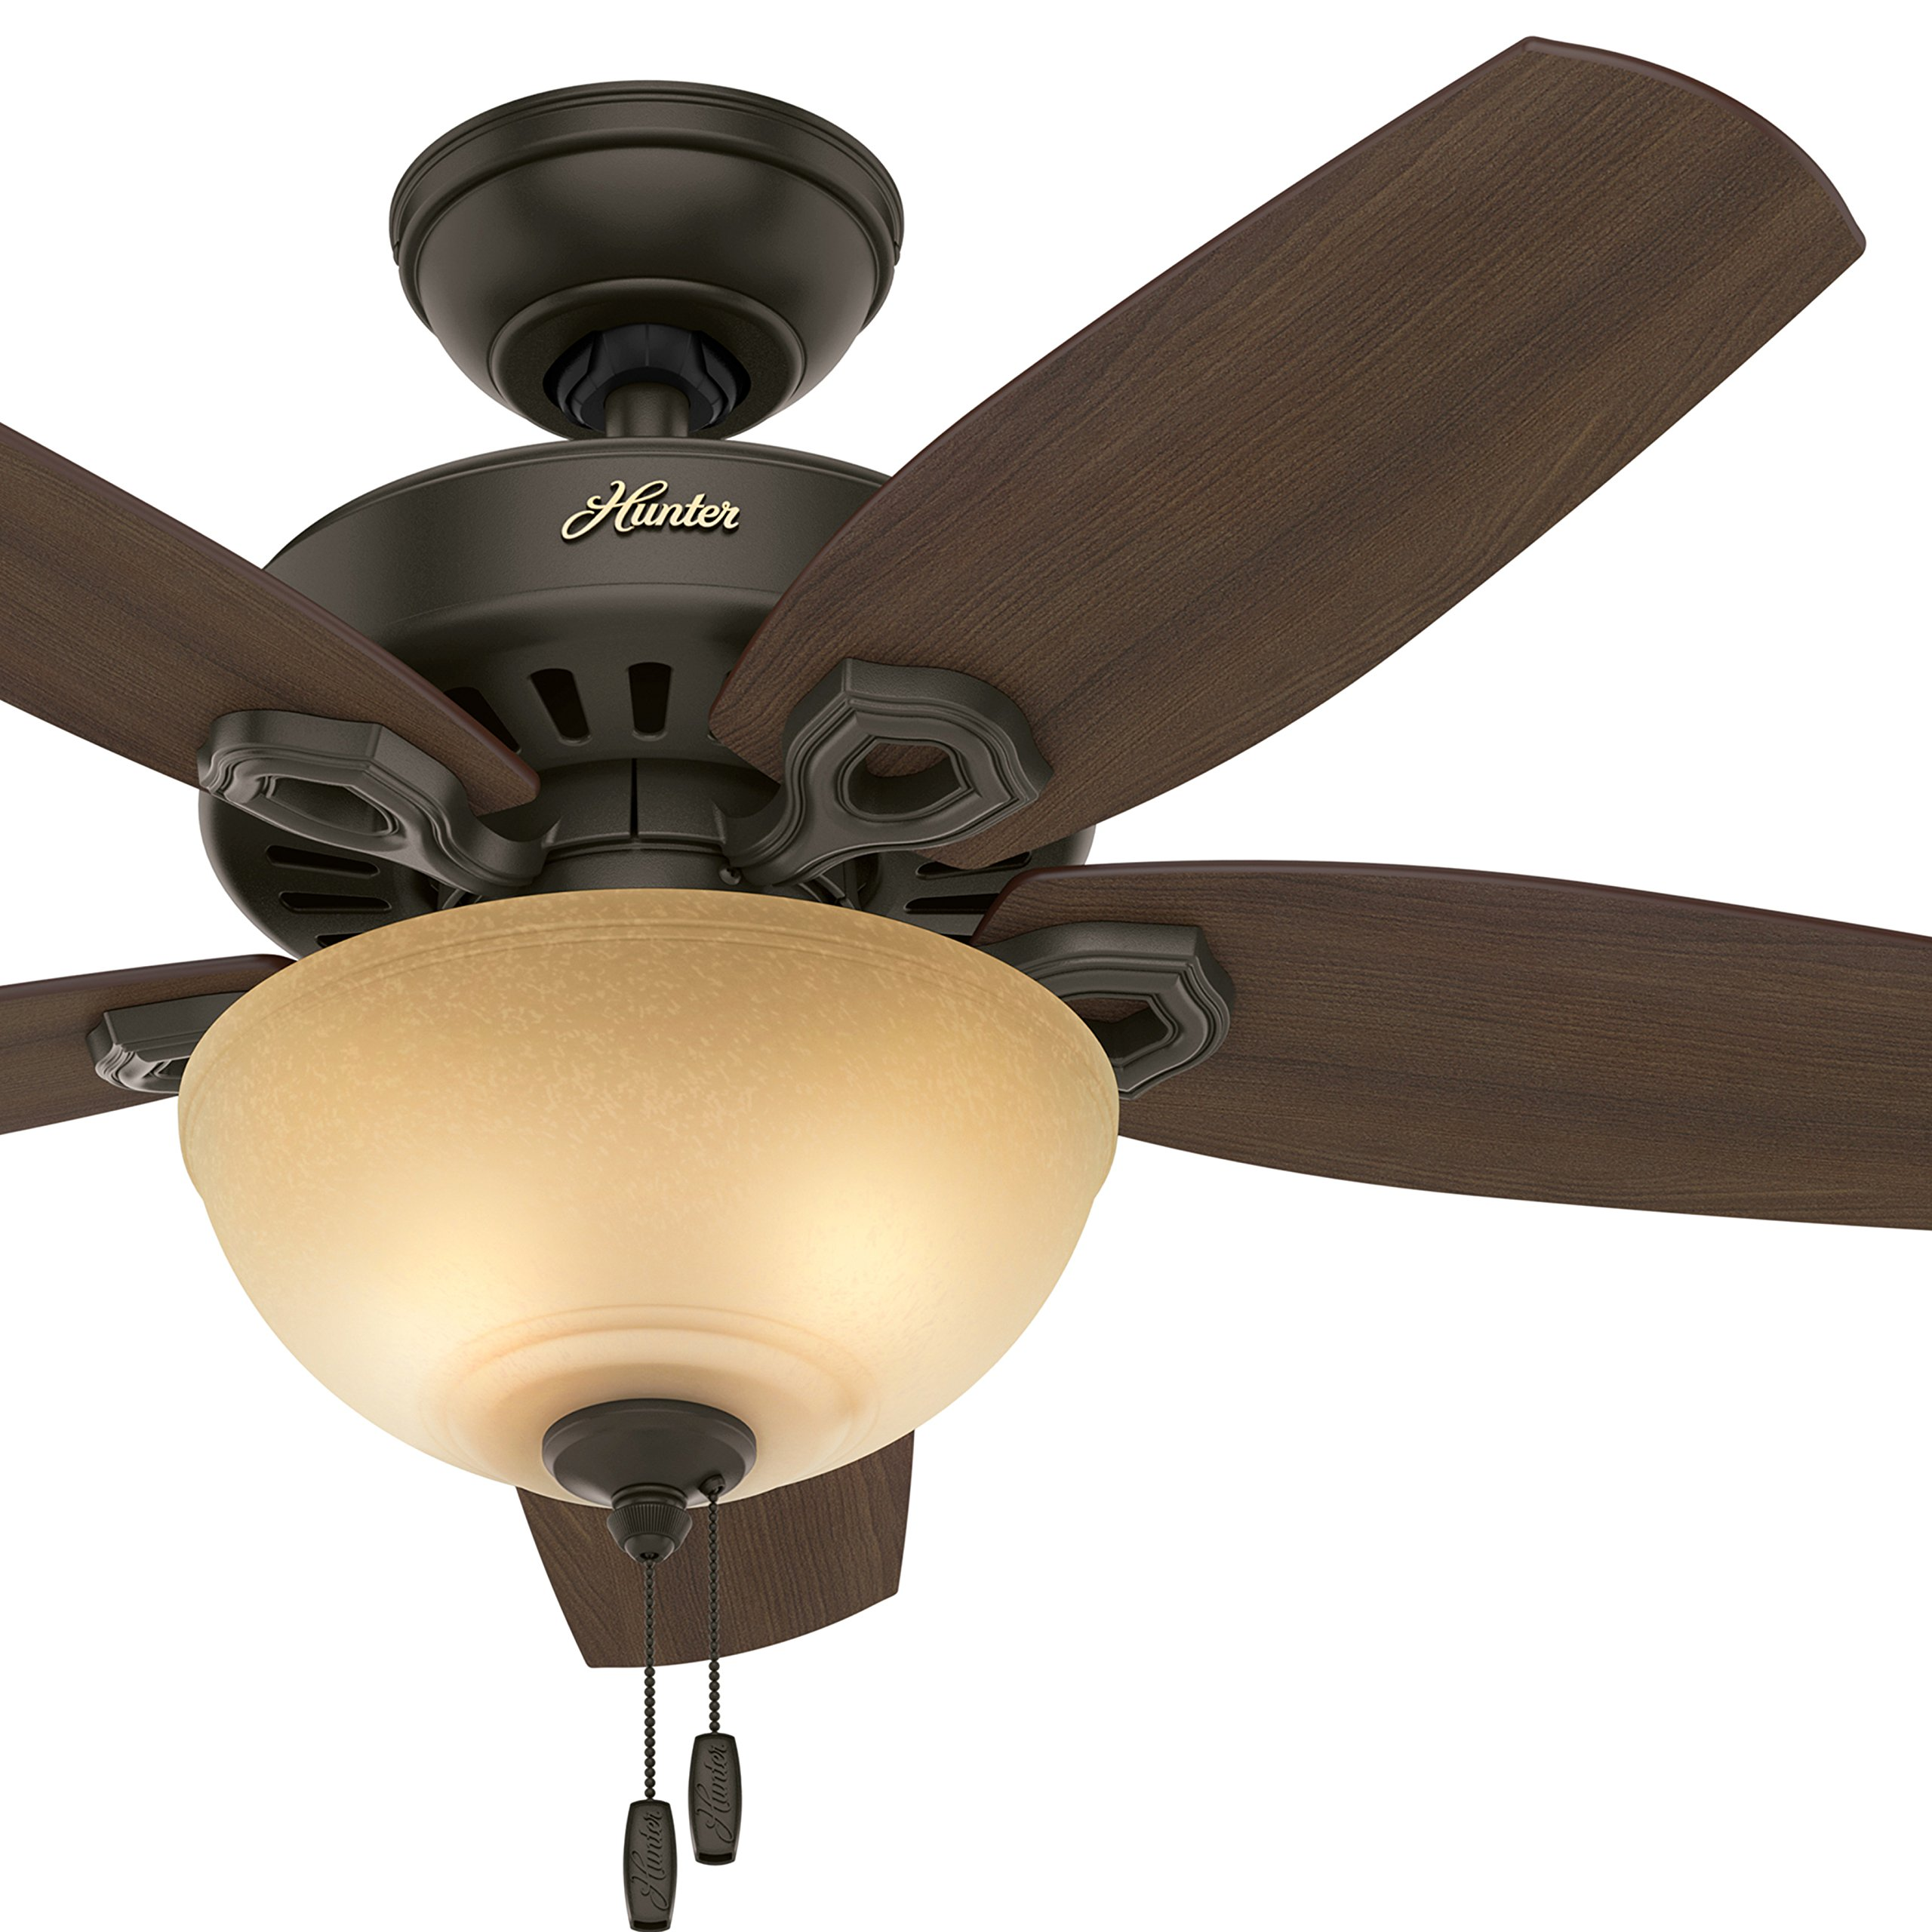 Hunter 42'' Small Room Ceiling Fan in New Bronze with Bowl Light Kit (Certified Refurbished)